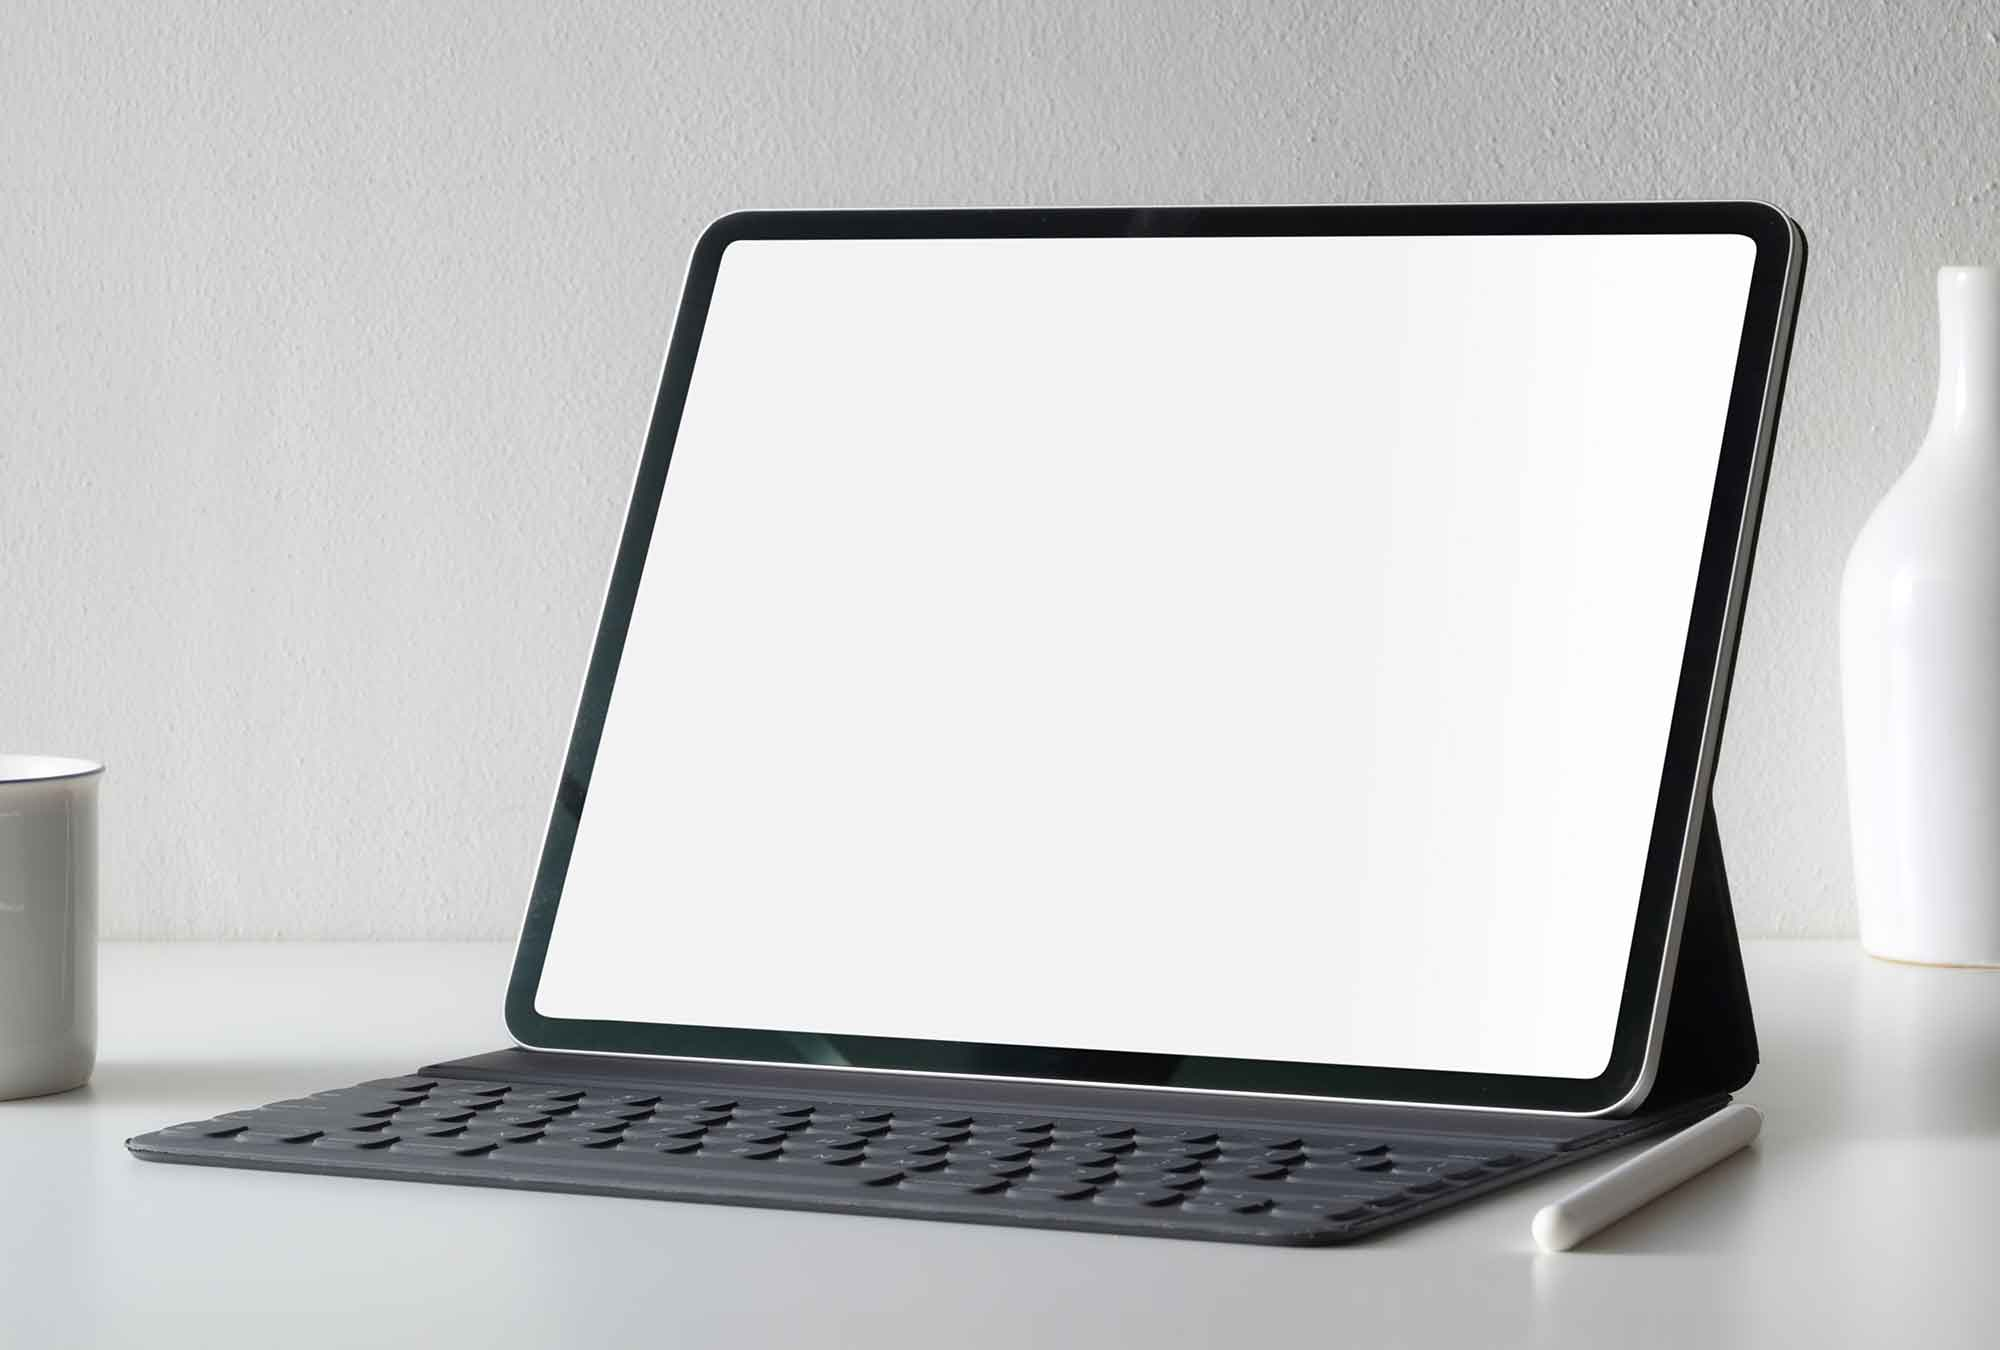 Tablet with Keyboard Mockup 2